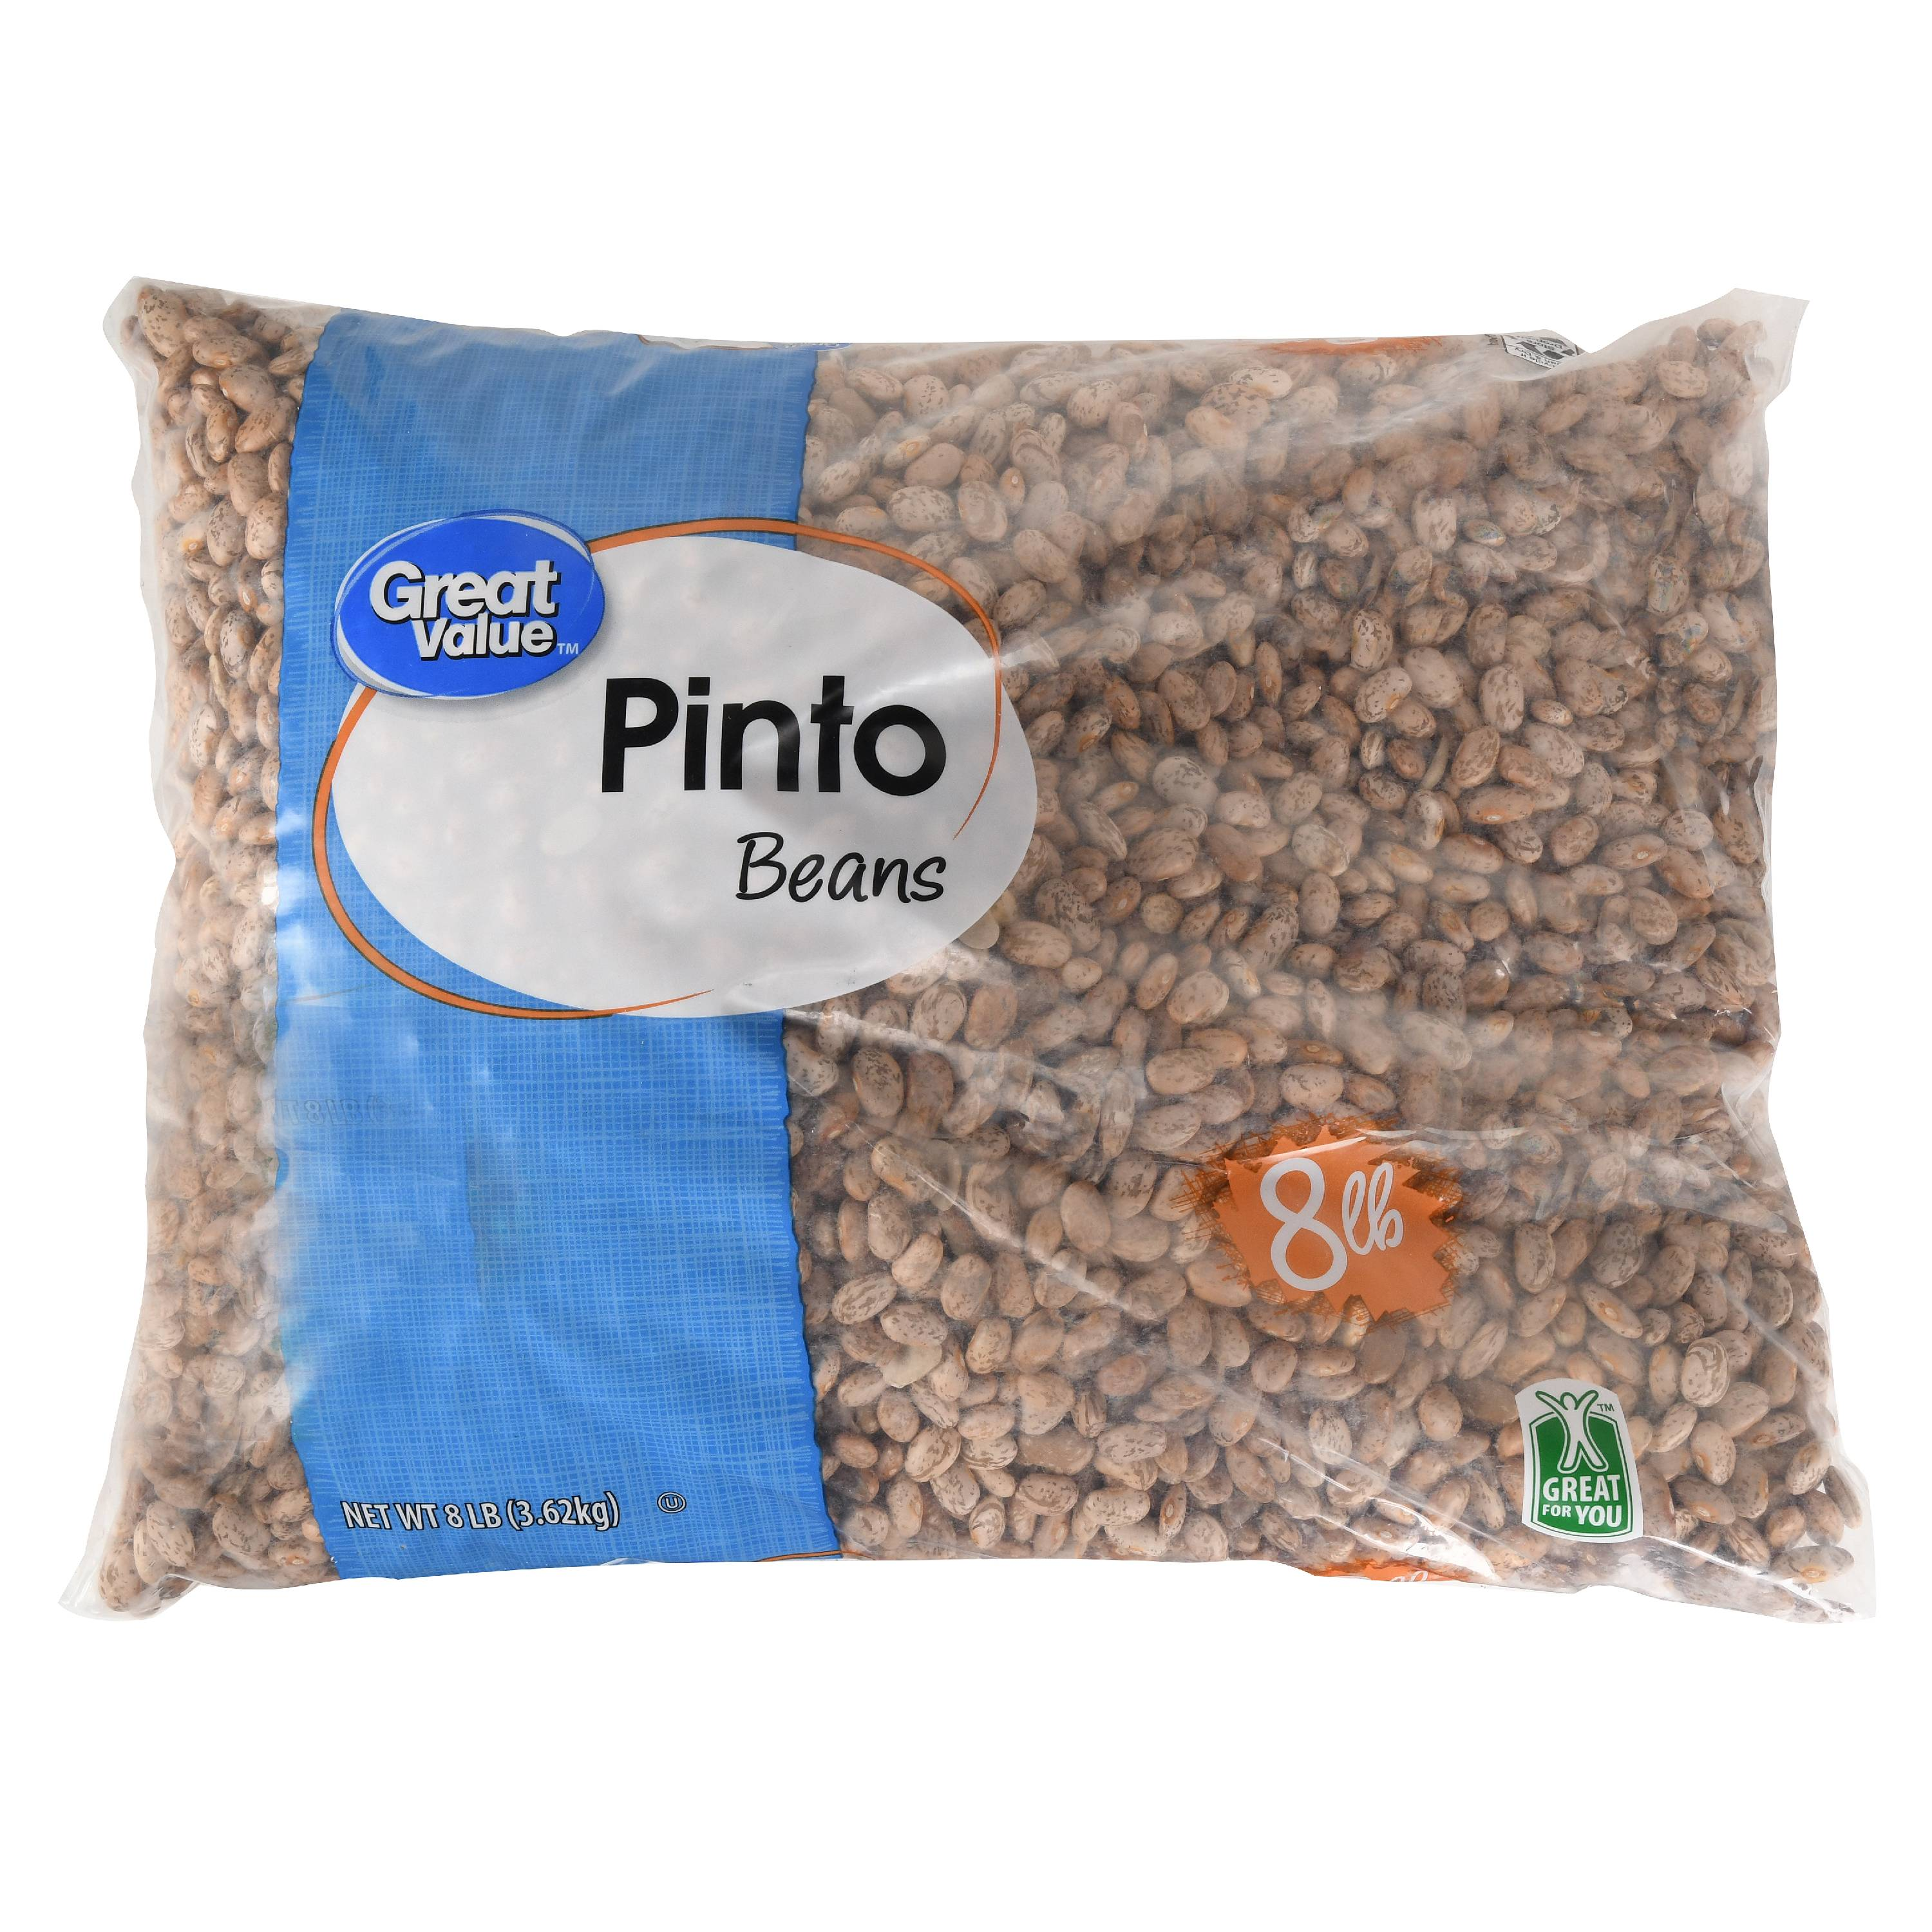 Great Value Pinto Beans, 8 lb